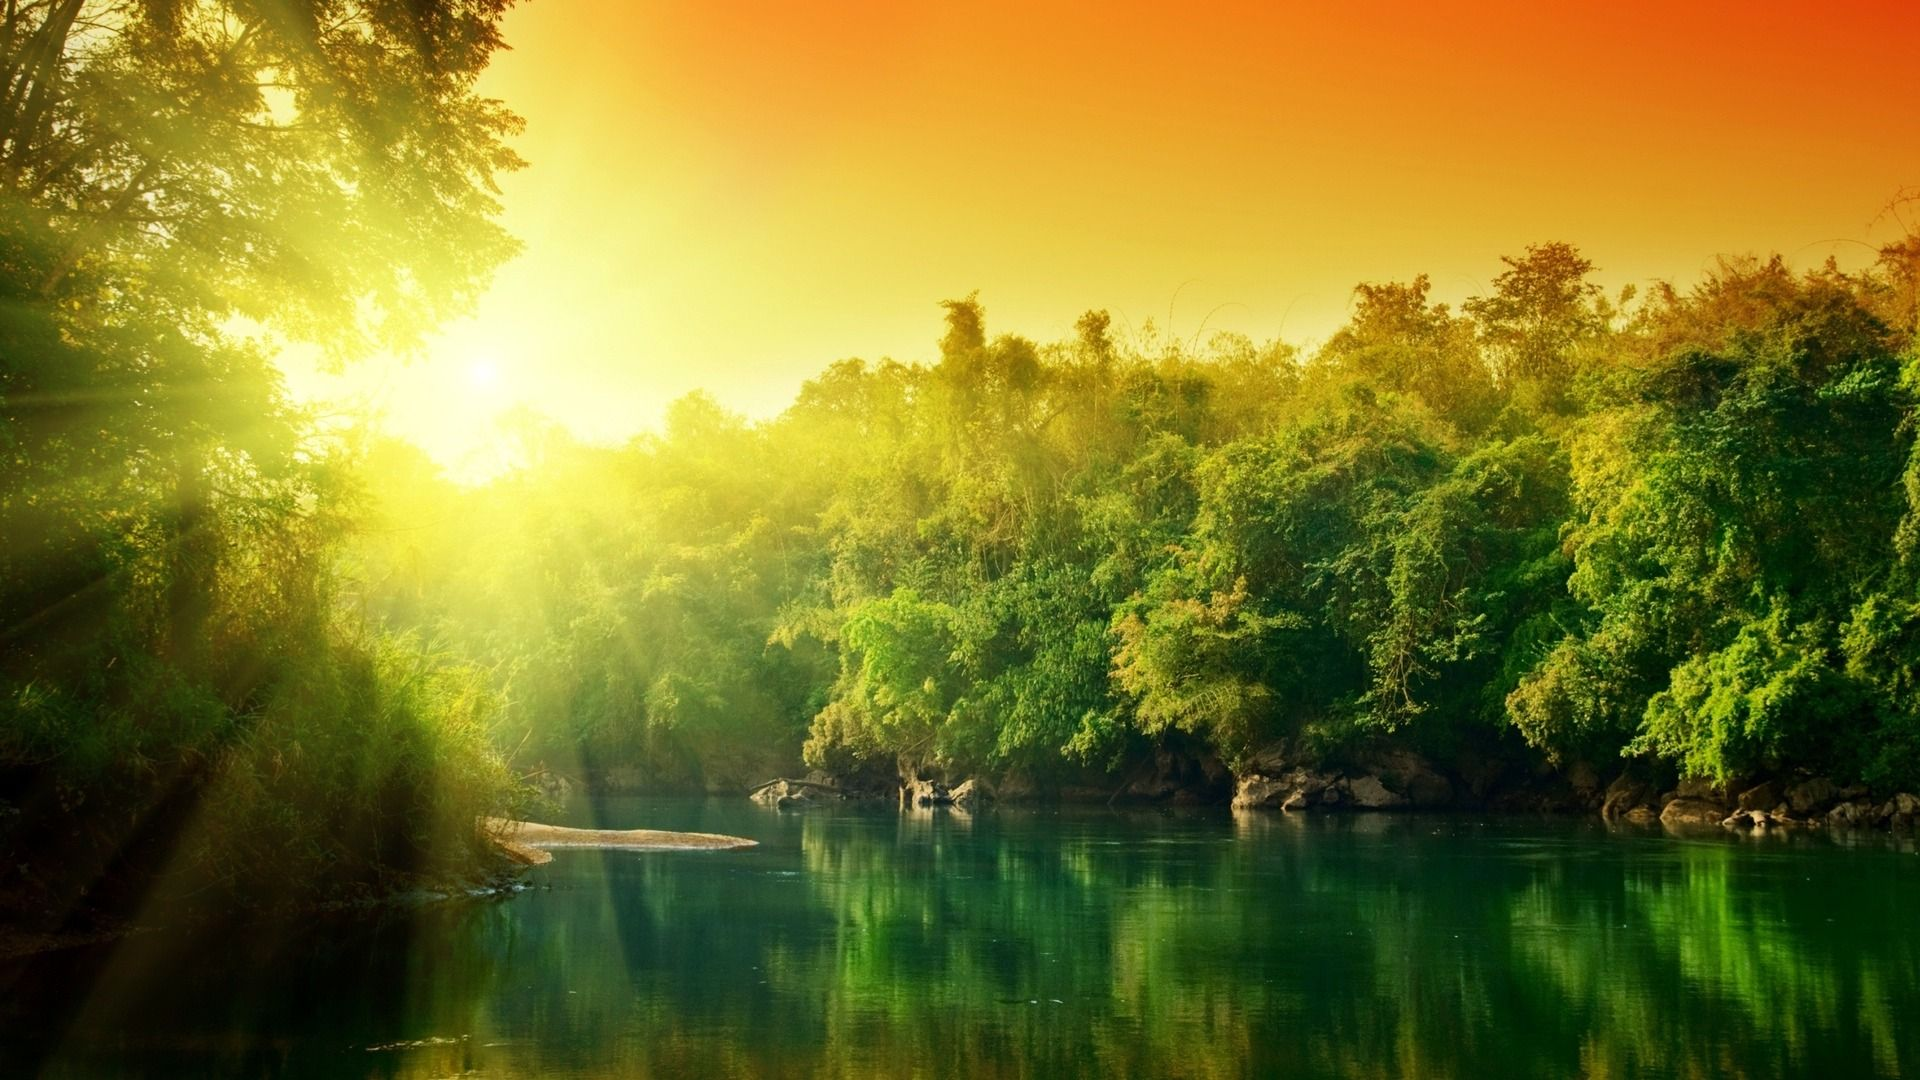 Sunrise Over The Green Nature And Lake Hd Nature Wallpaper